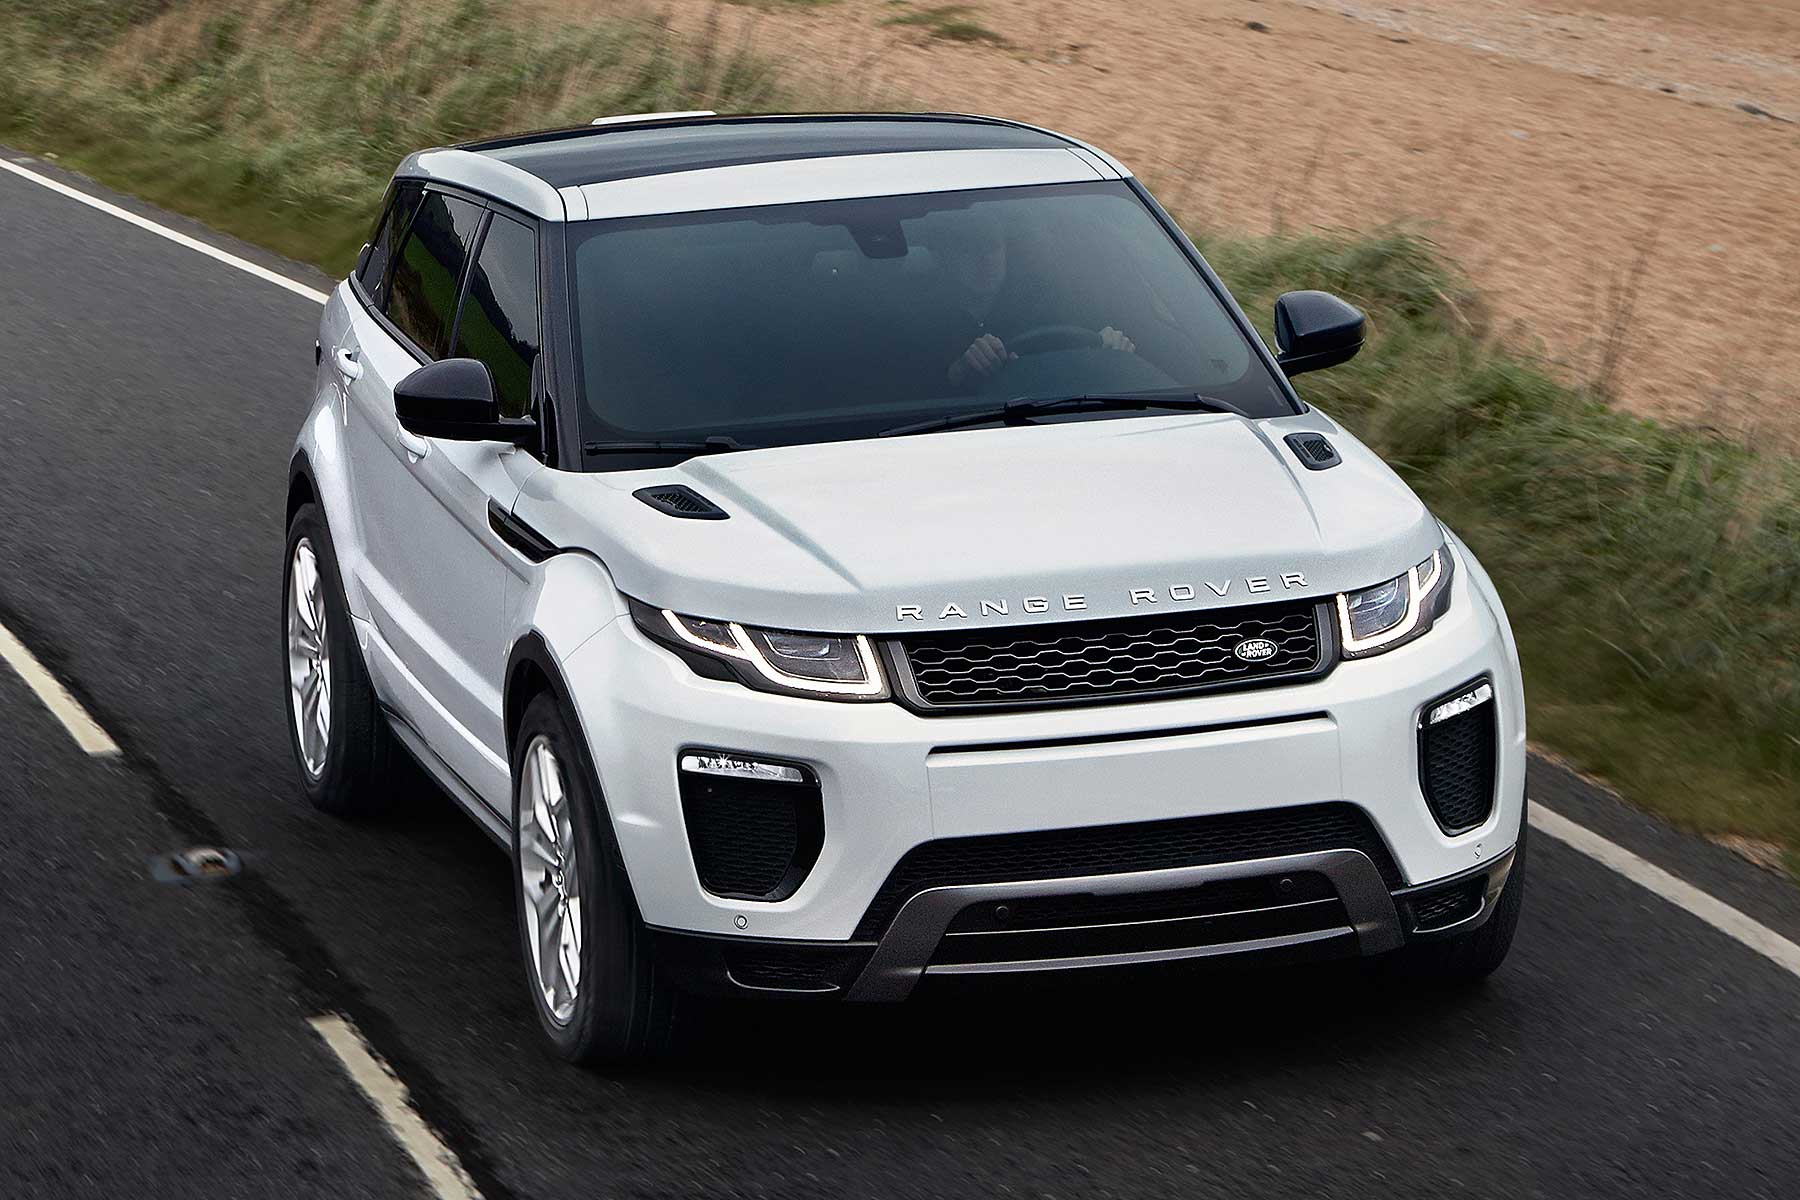 2016 Range Rover Evoque prices to start at £30 200